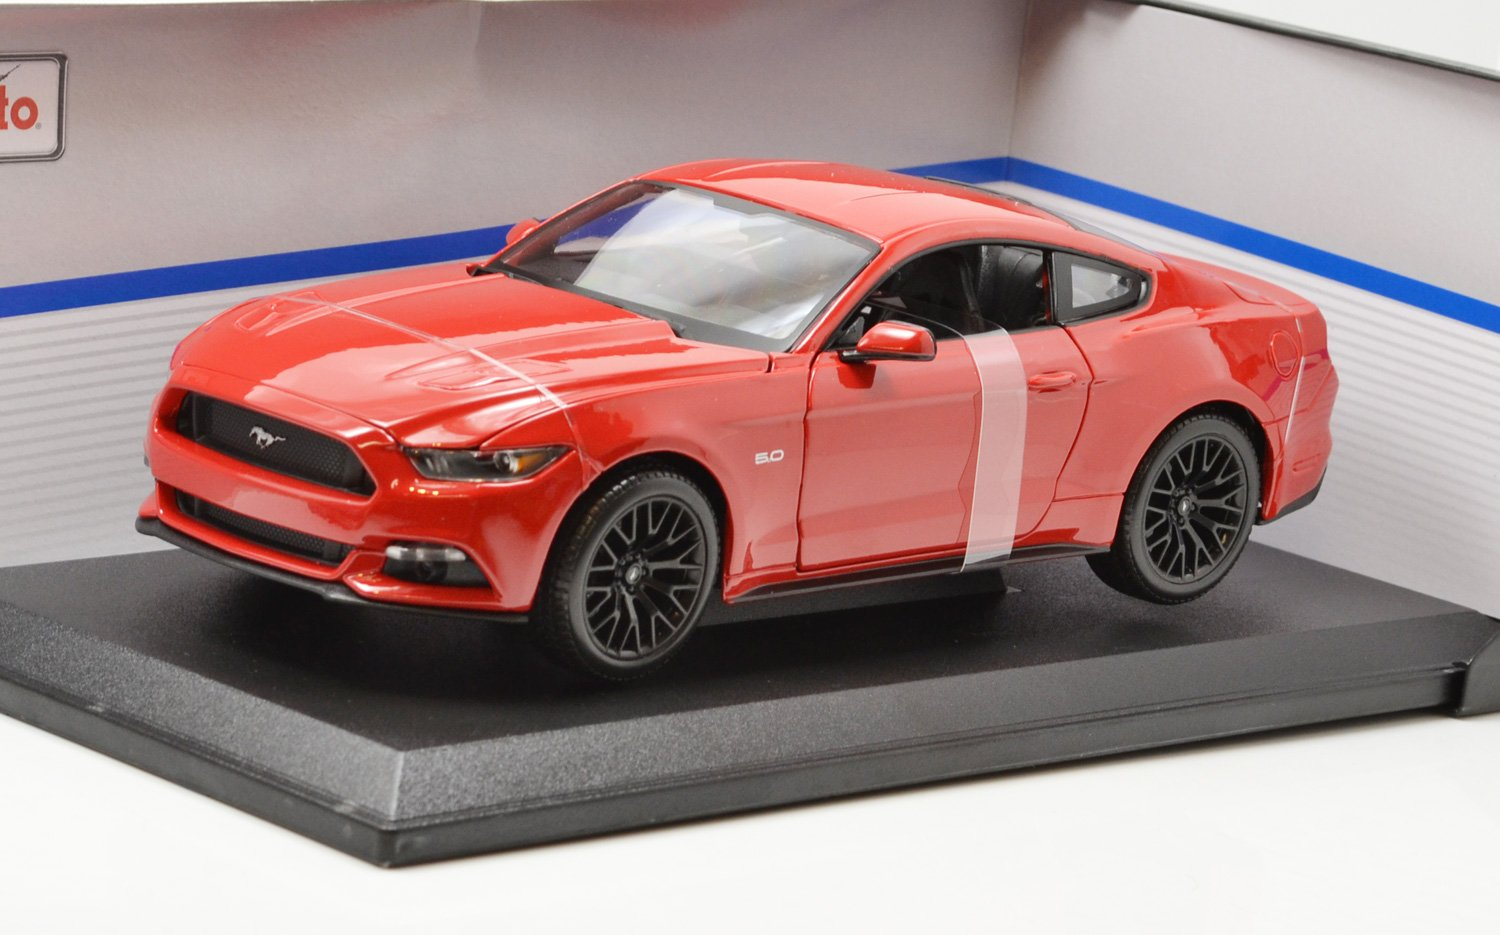 2015 Ford Mustang GT 5.0 ROT 1/18 by Maisto 31197 by Maisto